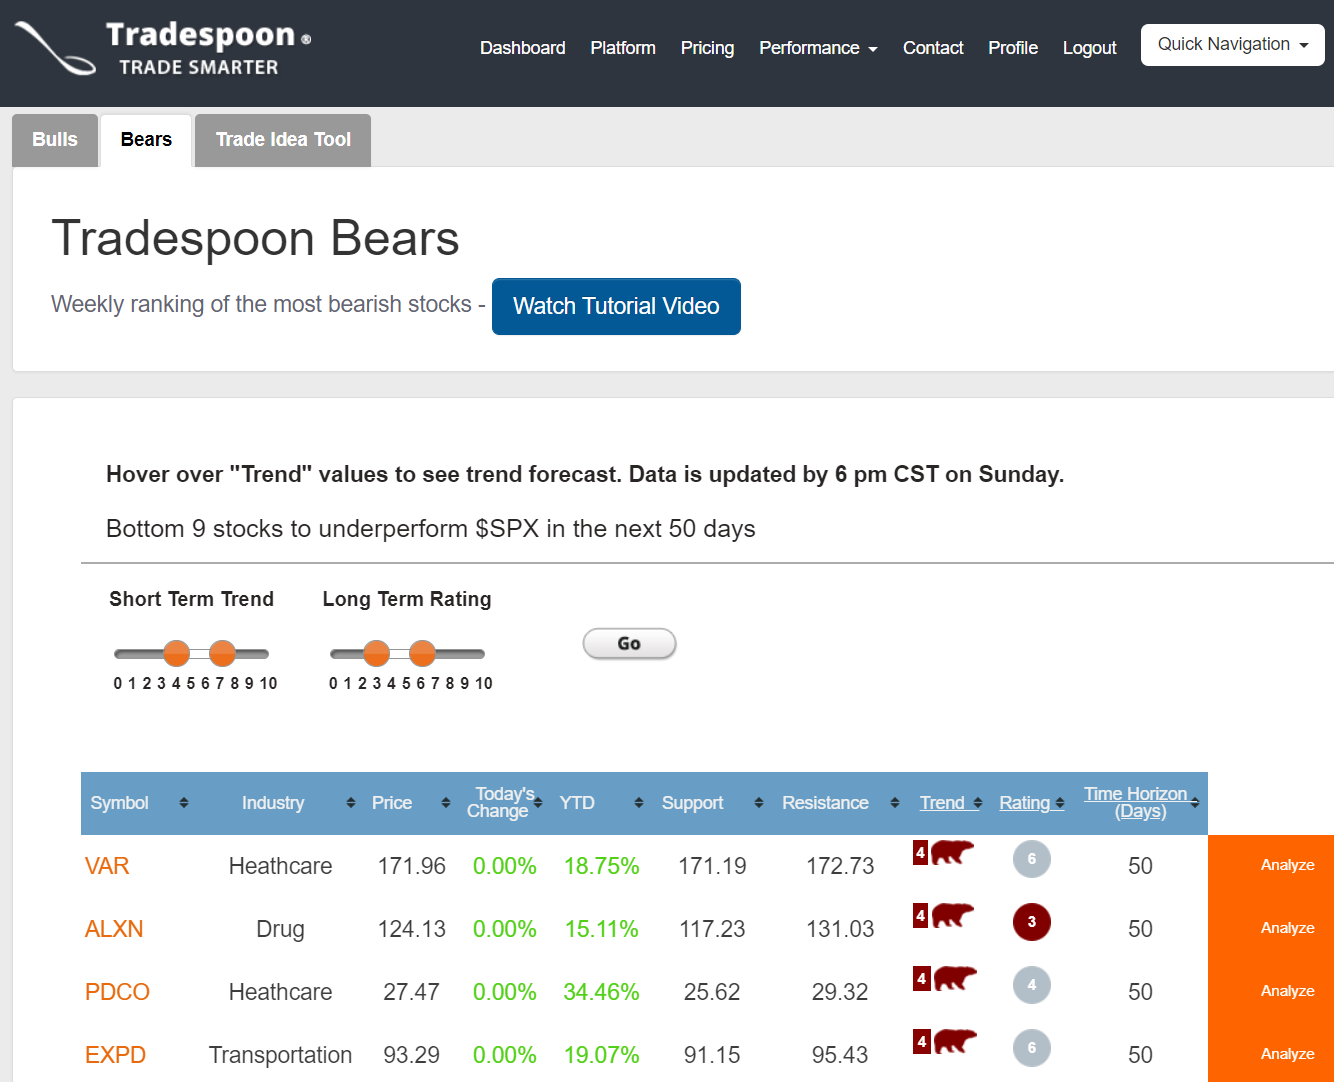 Tradespoon Review 2020: What We Like and Dislike